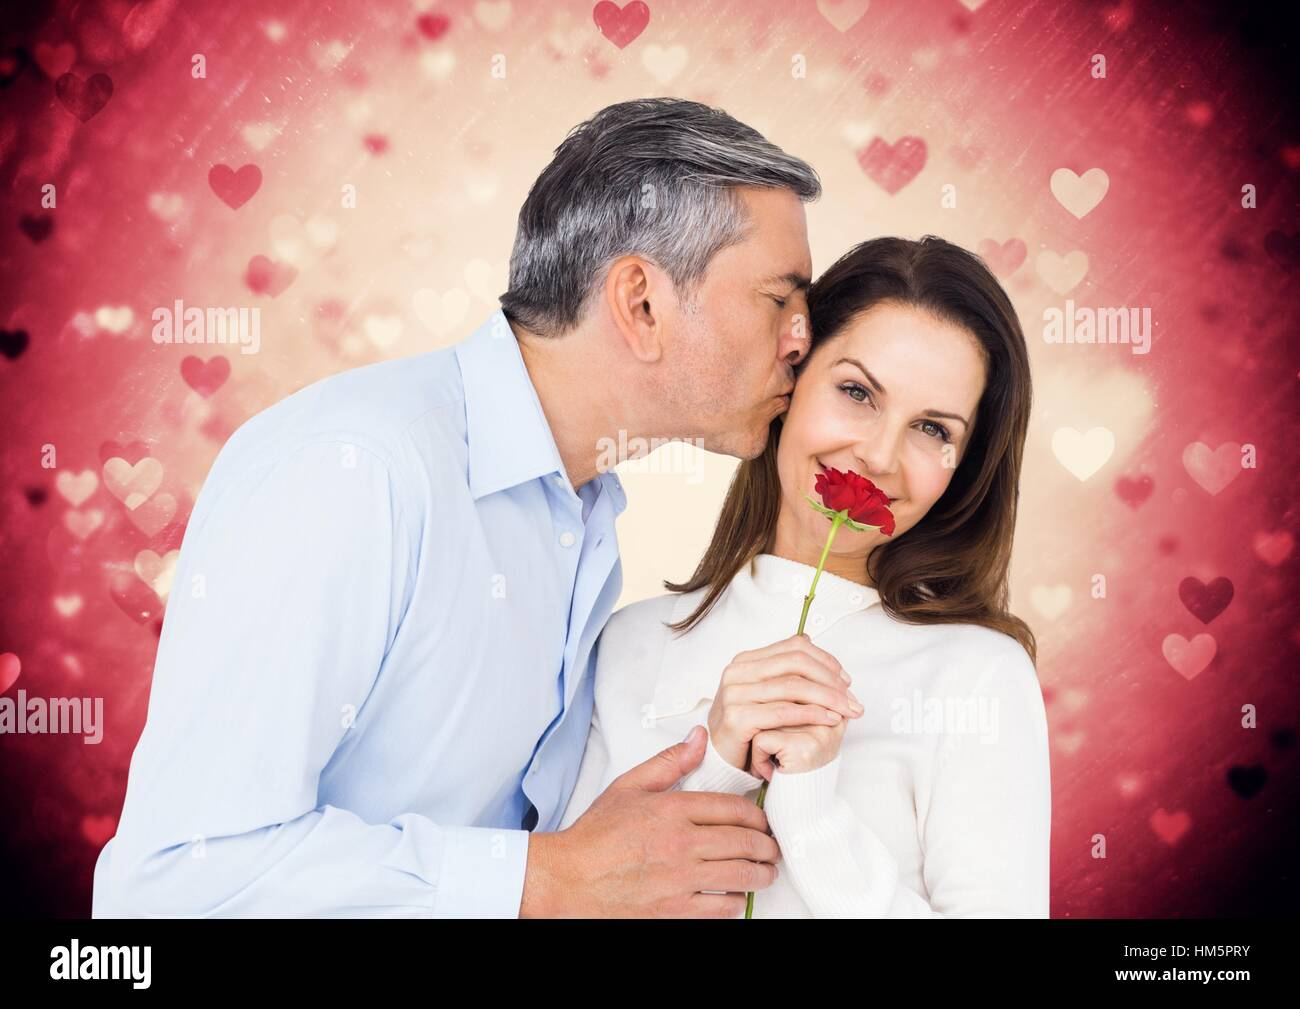 Man kissing on woman cheeks while holding red rose - Stock Image